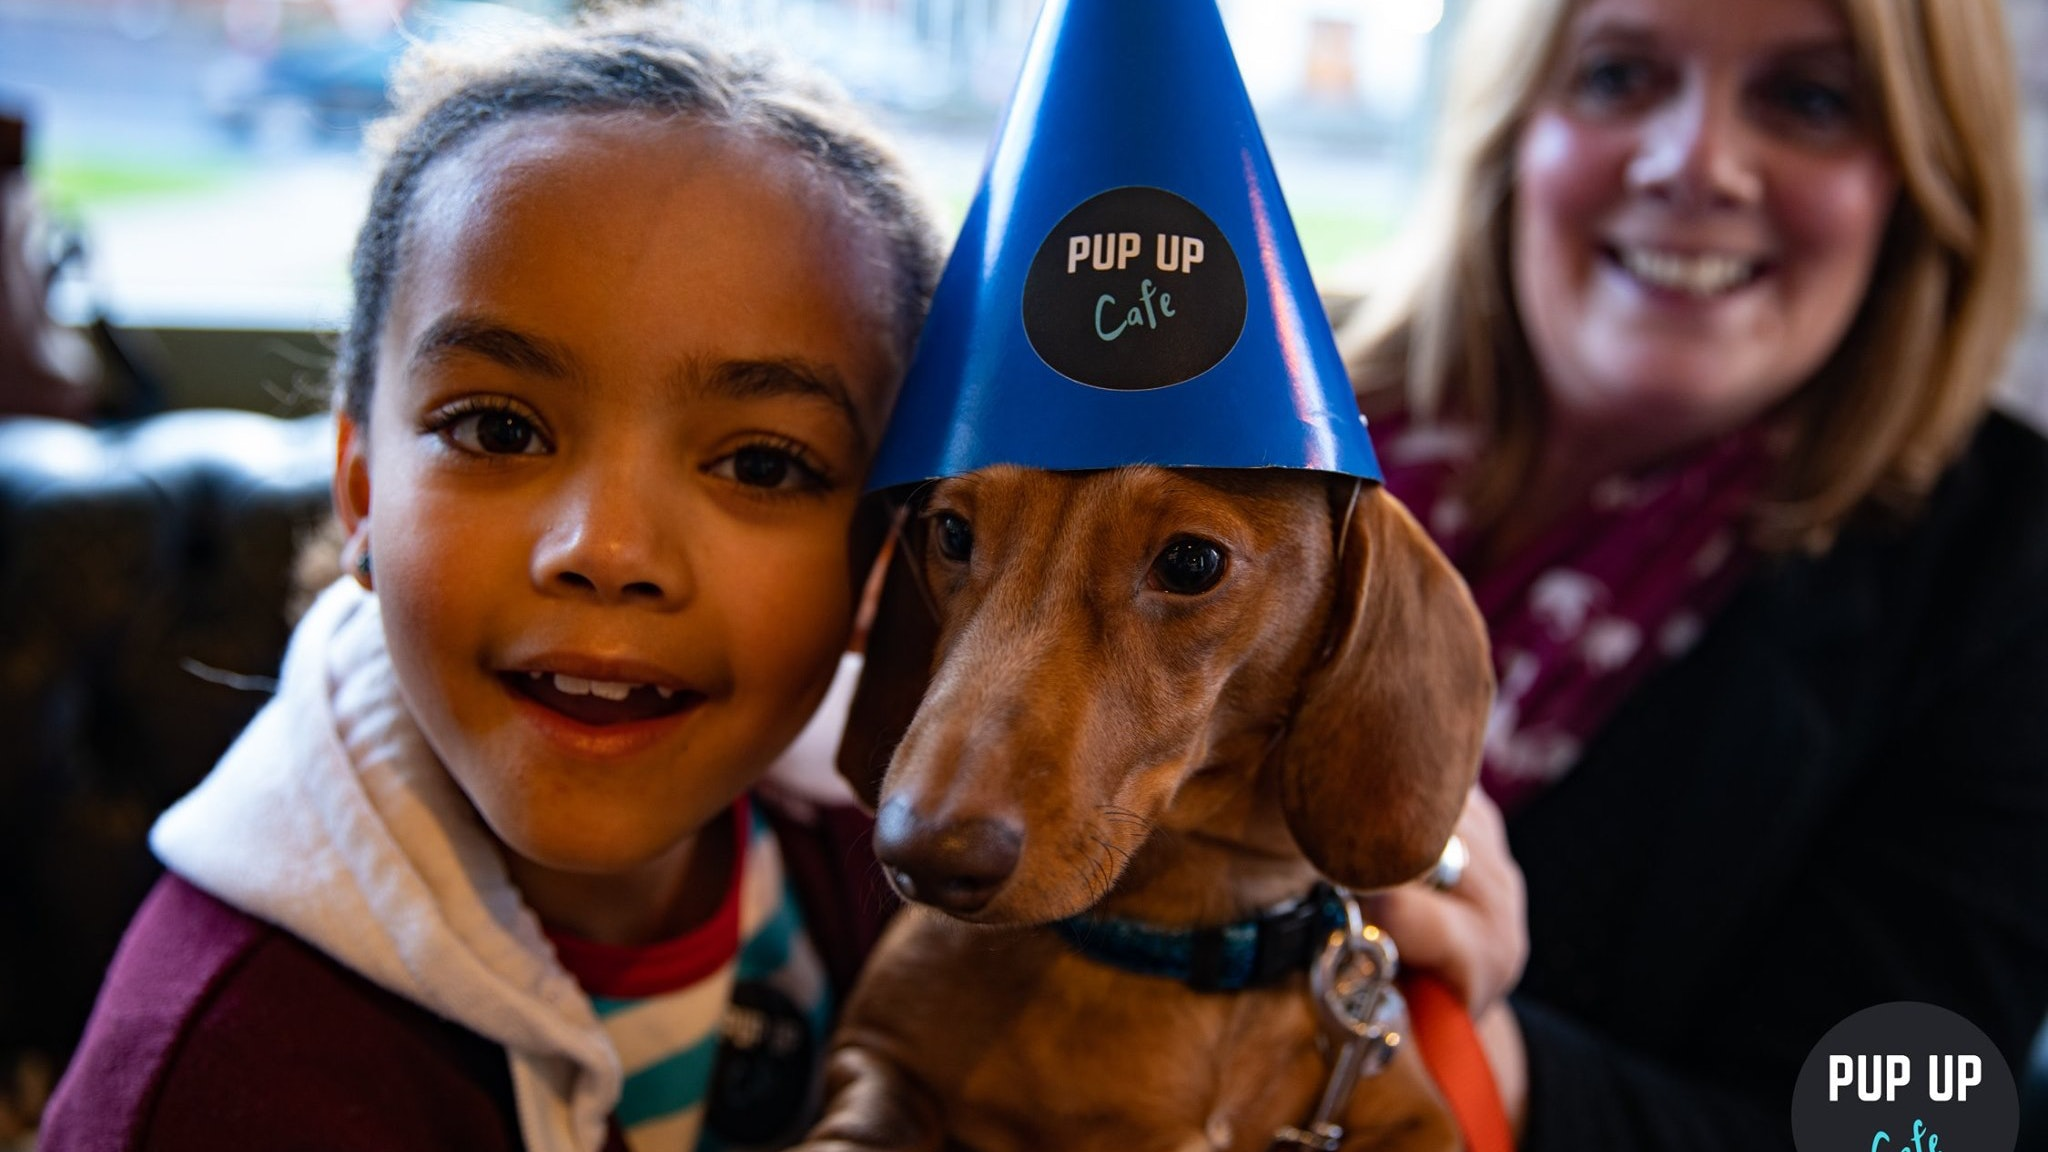 Dachshund Pop Up Cafe – London